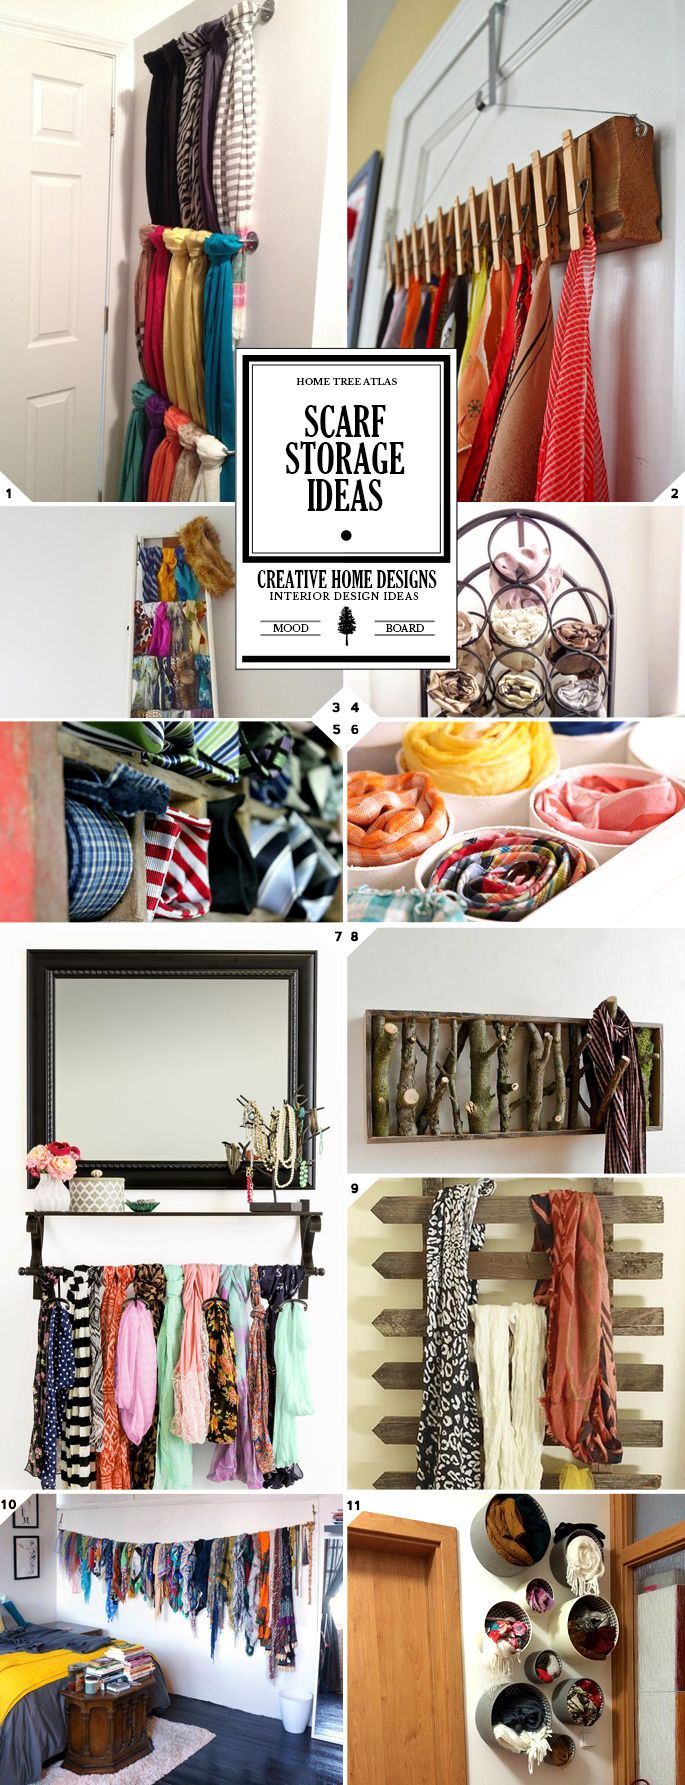 Uncategorized Best Way To Store Scarves best 25 organize scarves ideas on pinterest organizing scarf organization and storage